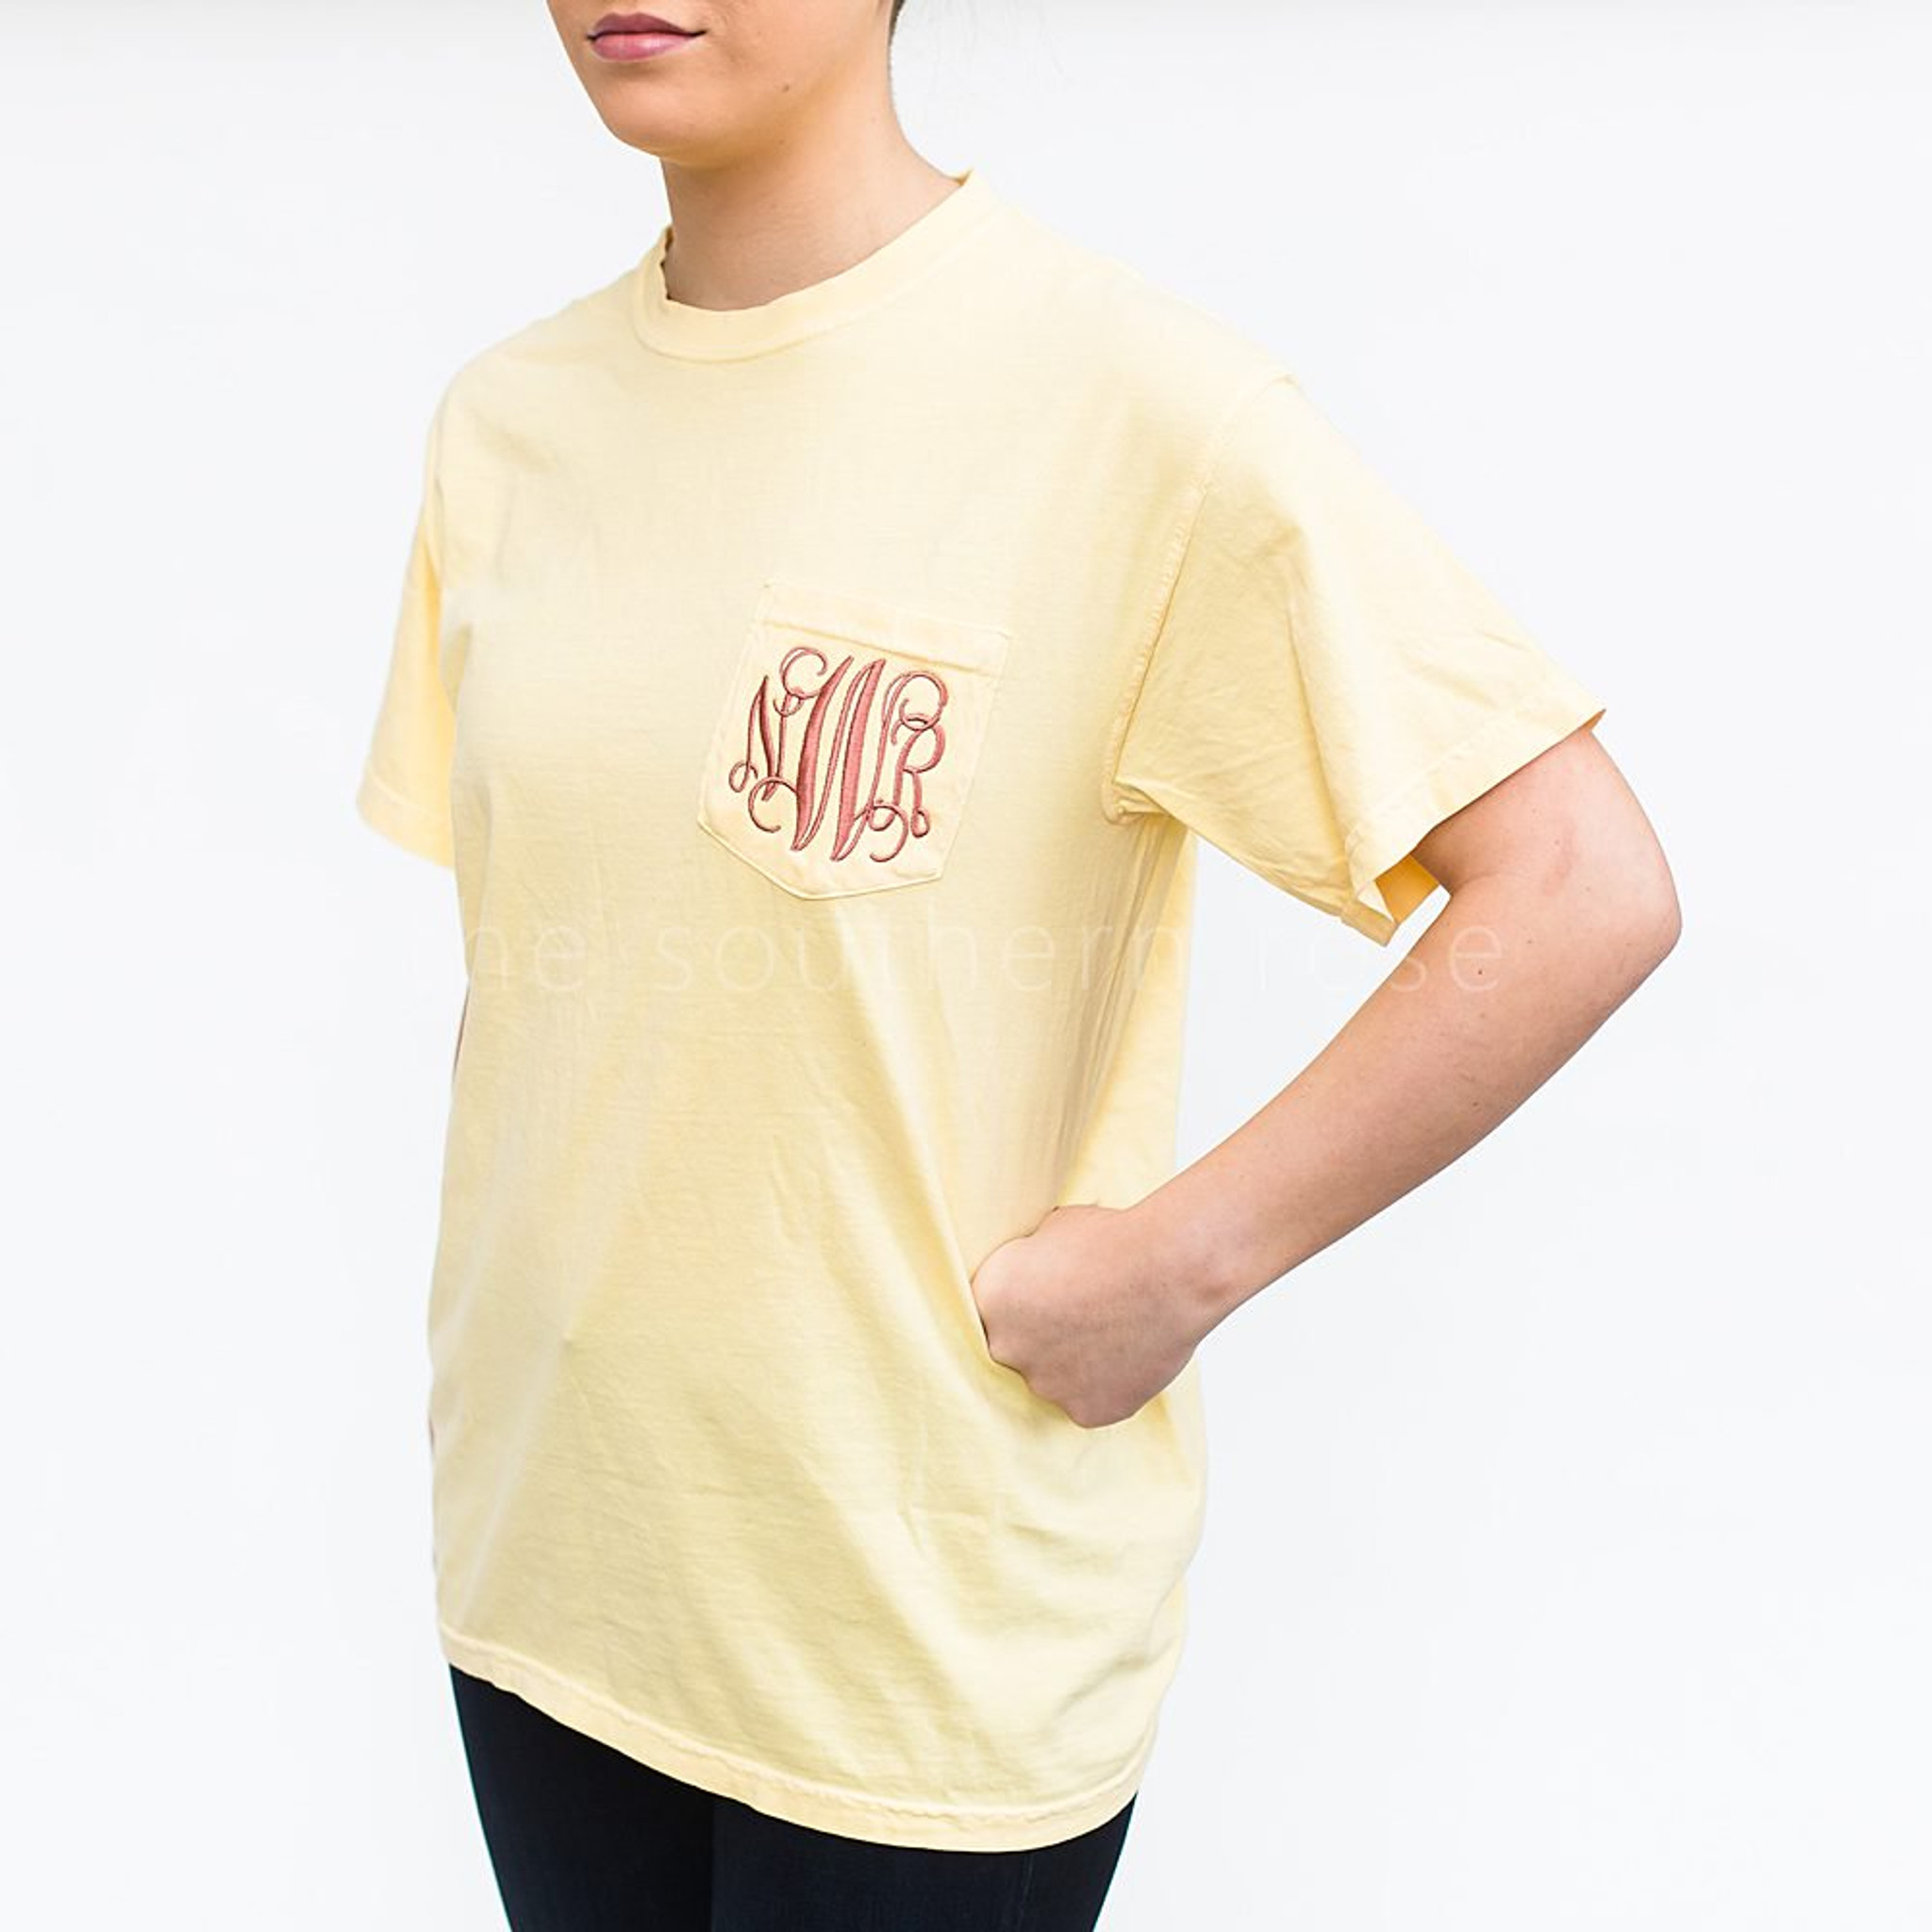 "A girl is wearing a light yellow tee shirt with the monogram ""NWR"" in fancy lettering on the chest pocket."